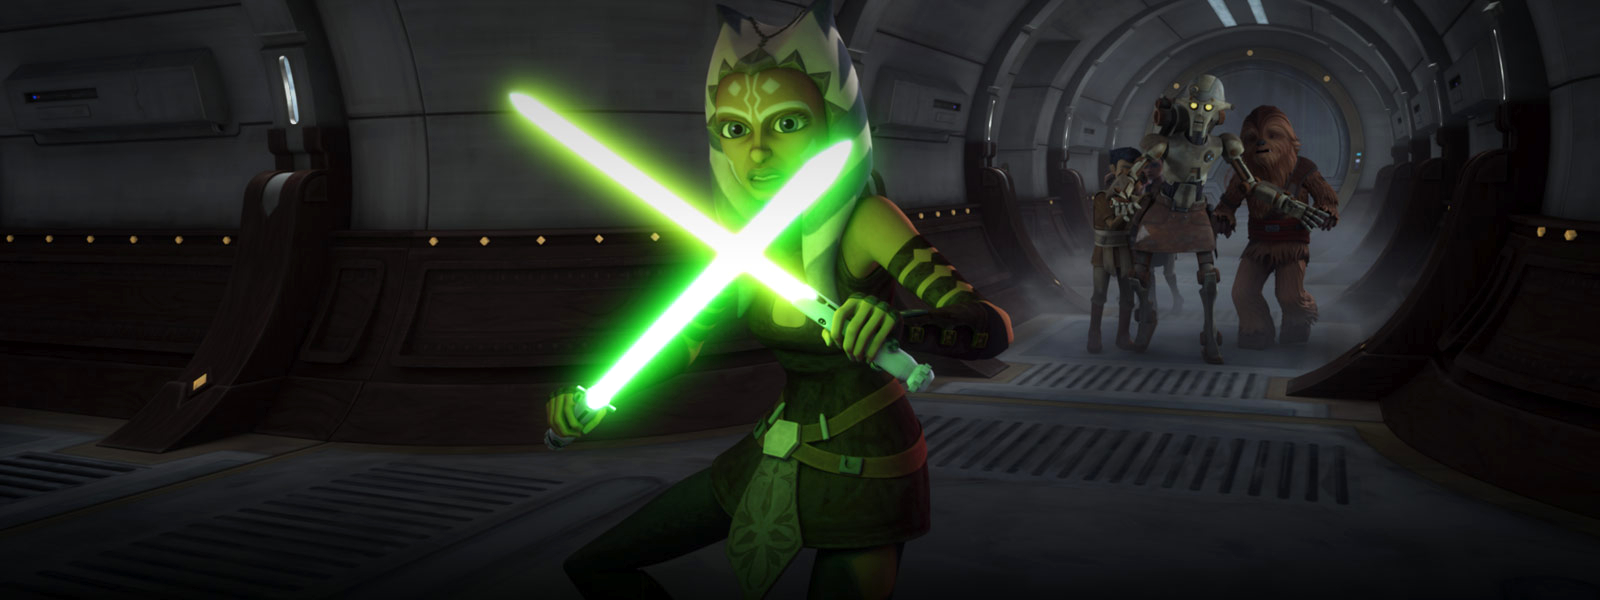 Star Wars: The Clone Wars - March 21st